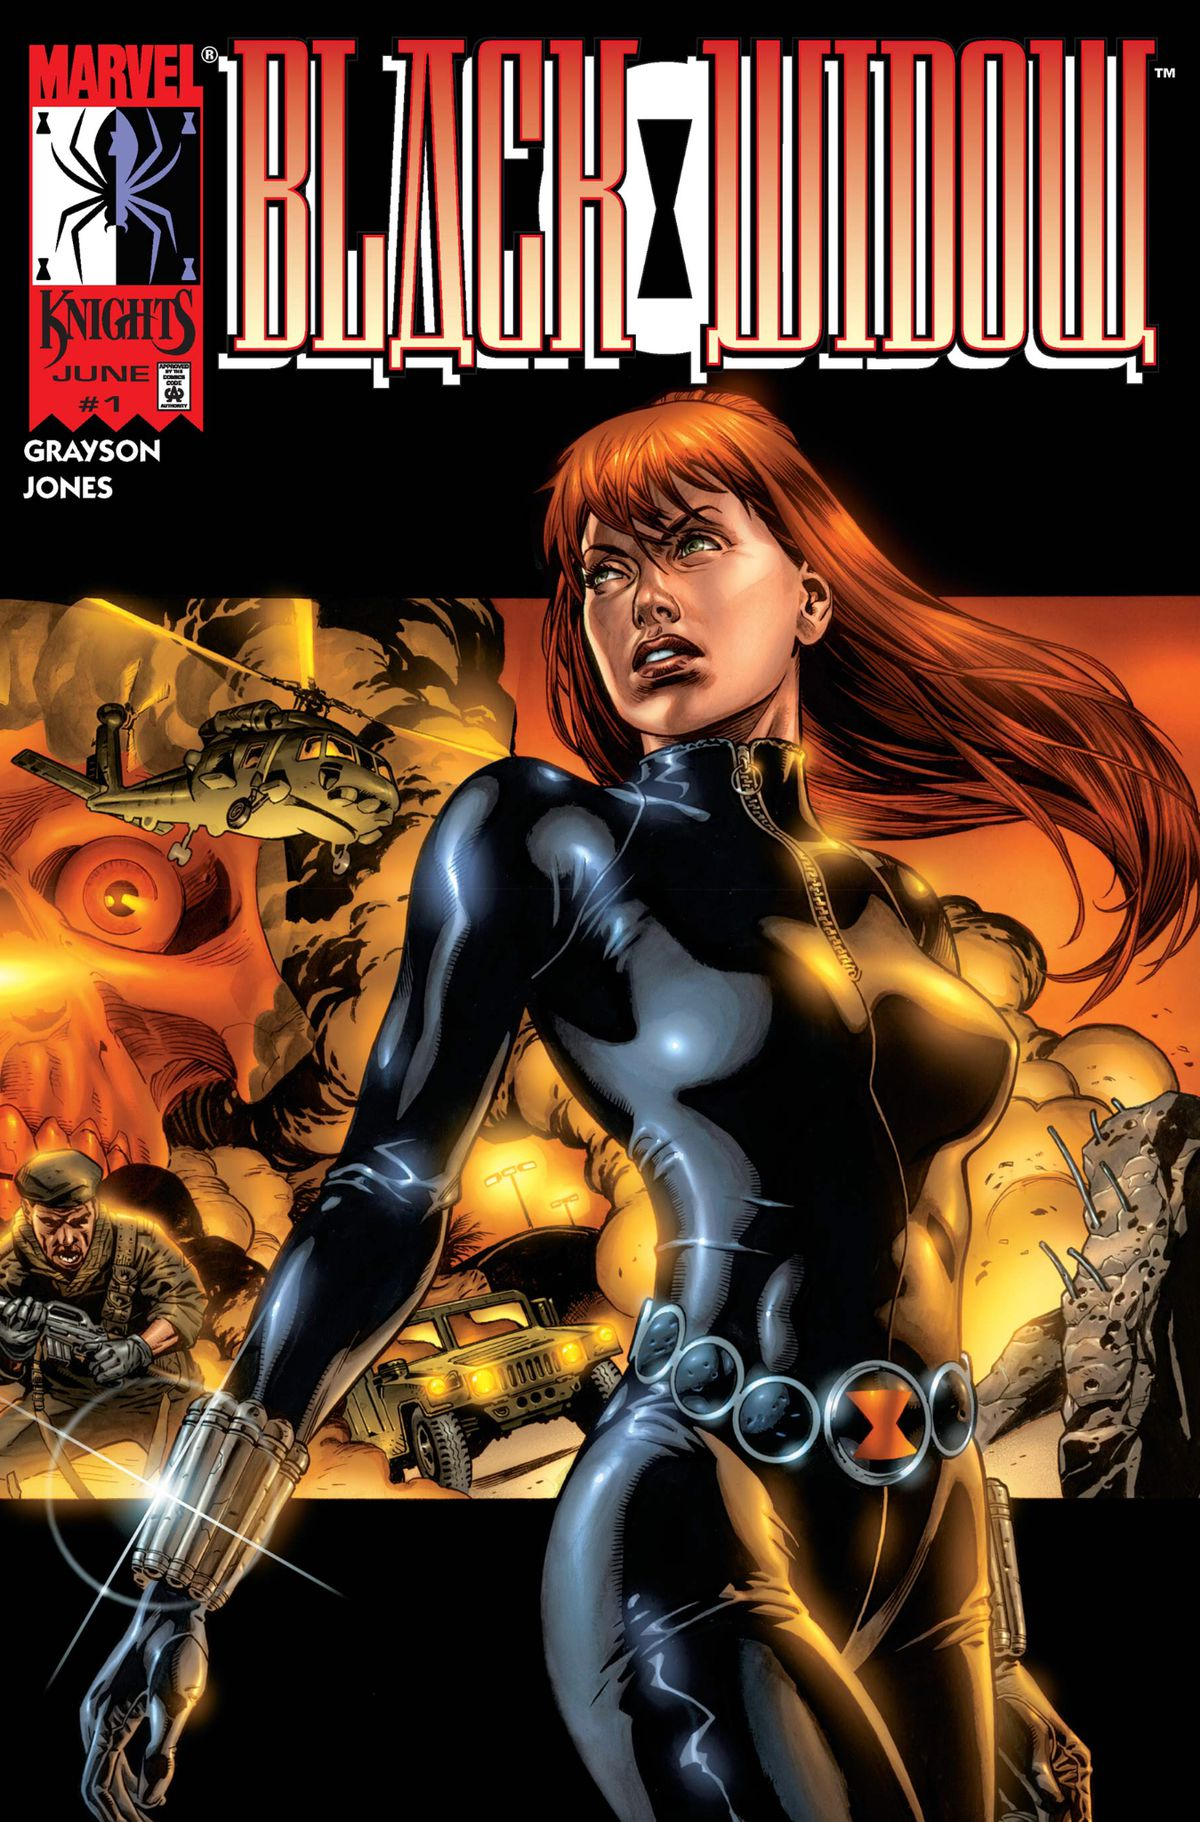 Natasha Romanoff/Black Widow stands in front of a collage of explosions and armed men on the cover of Black Widow #1 (1999).